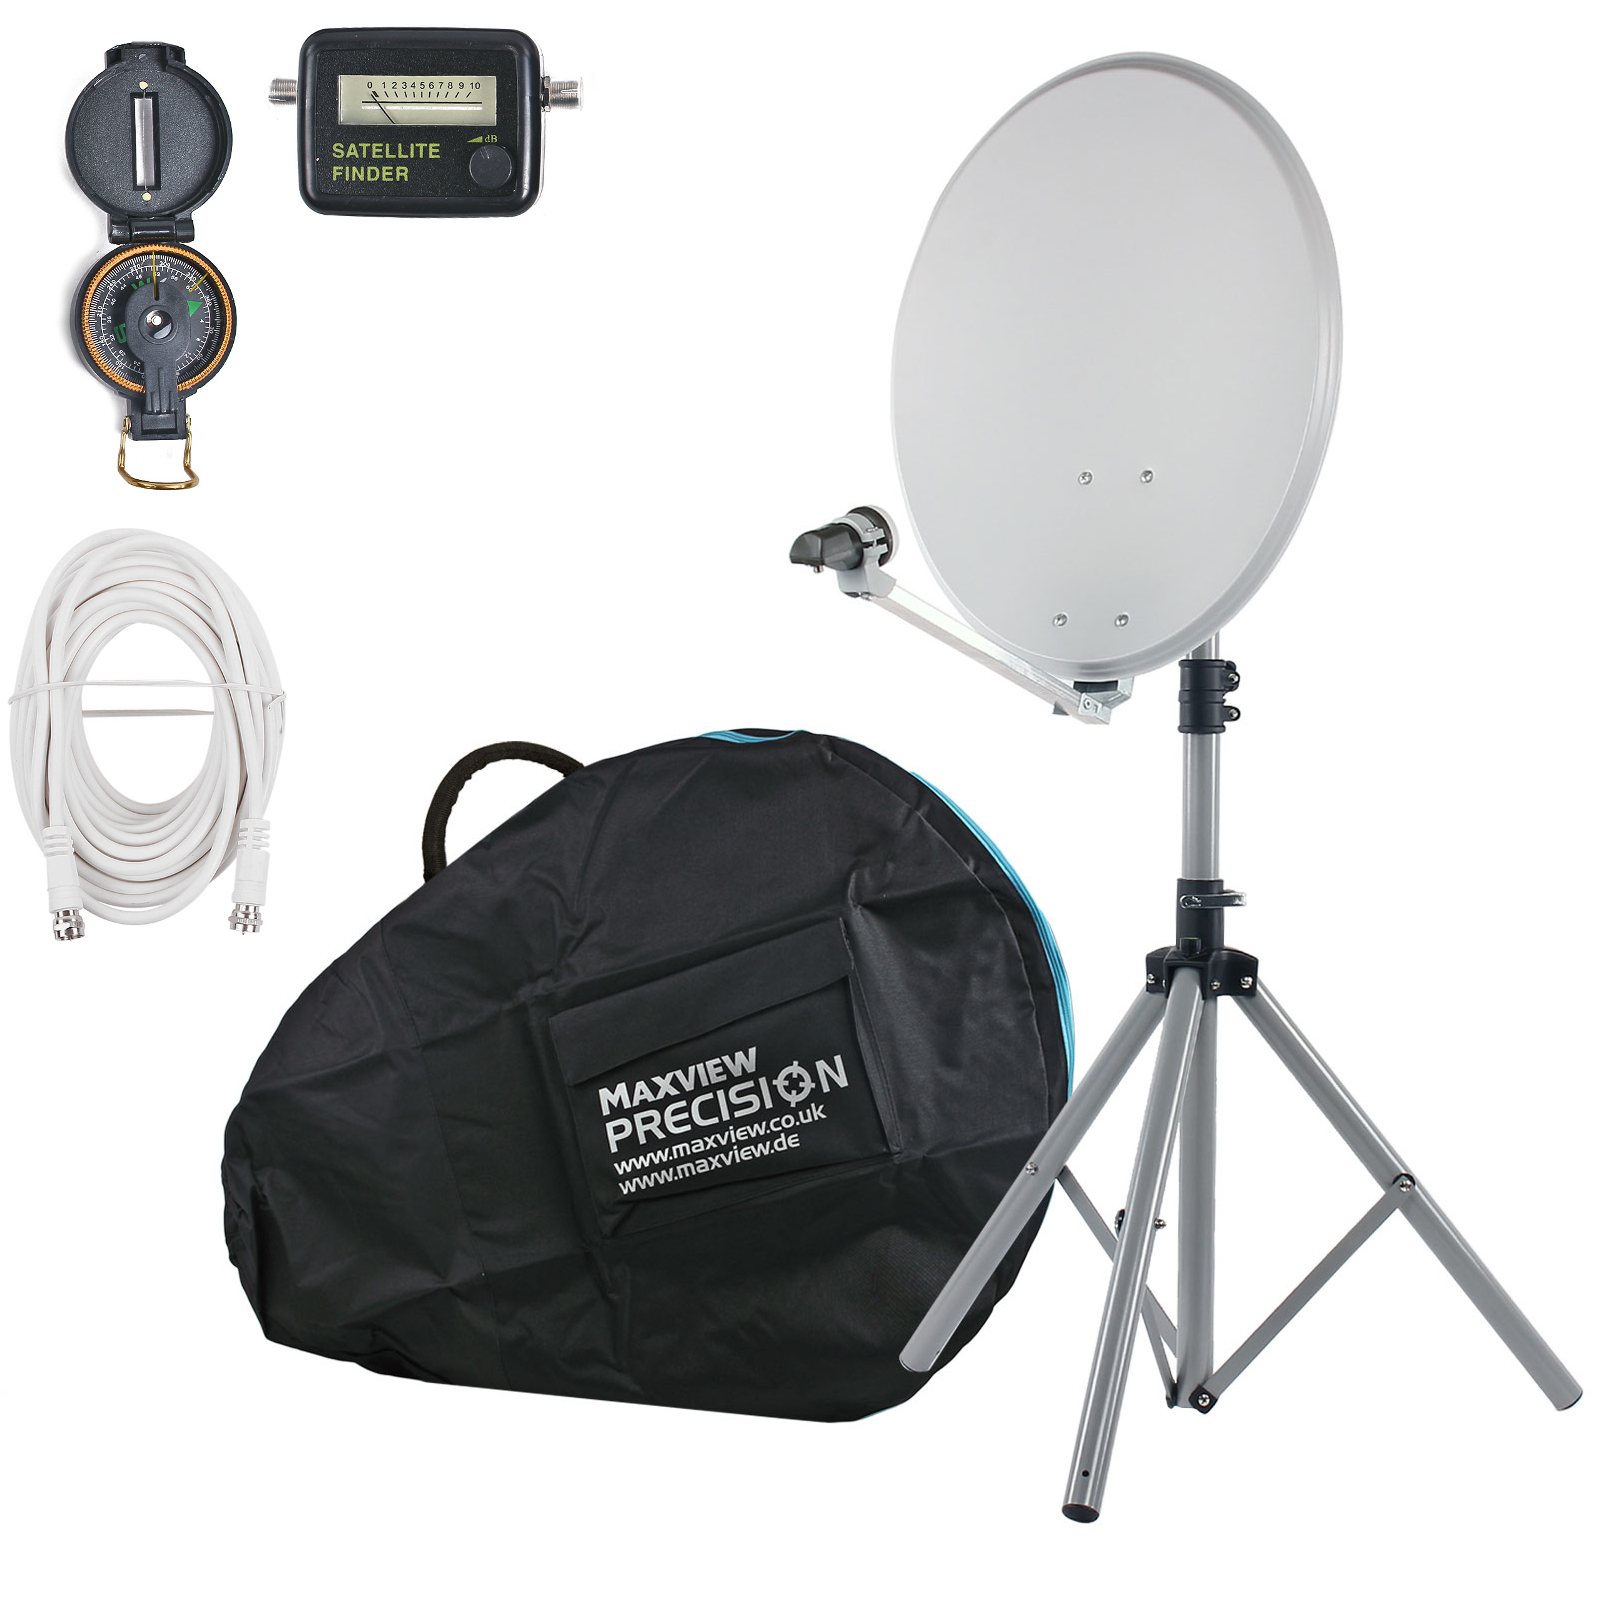 Maxview portable SAT Anlage Set light, 54cm Spiegel, Satfinder, Kompass, Stativ